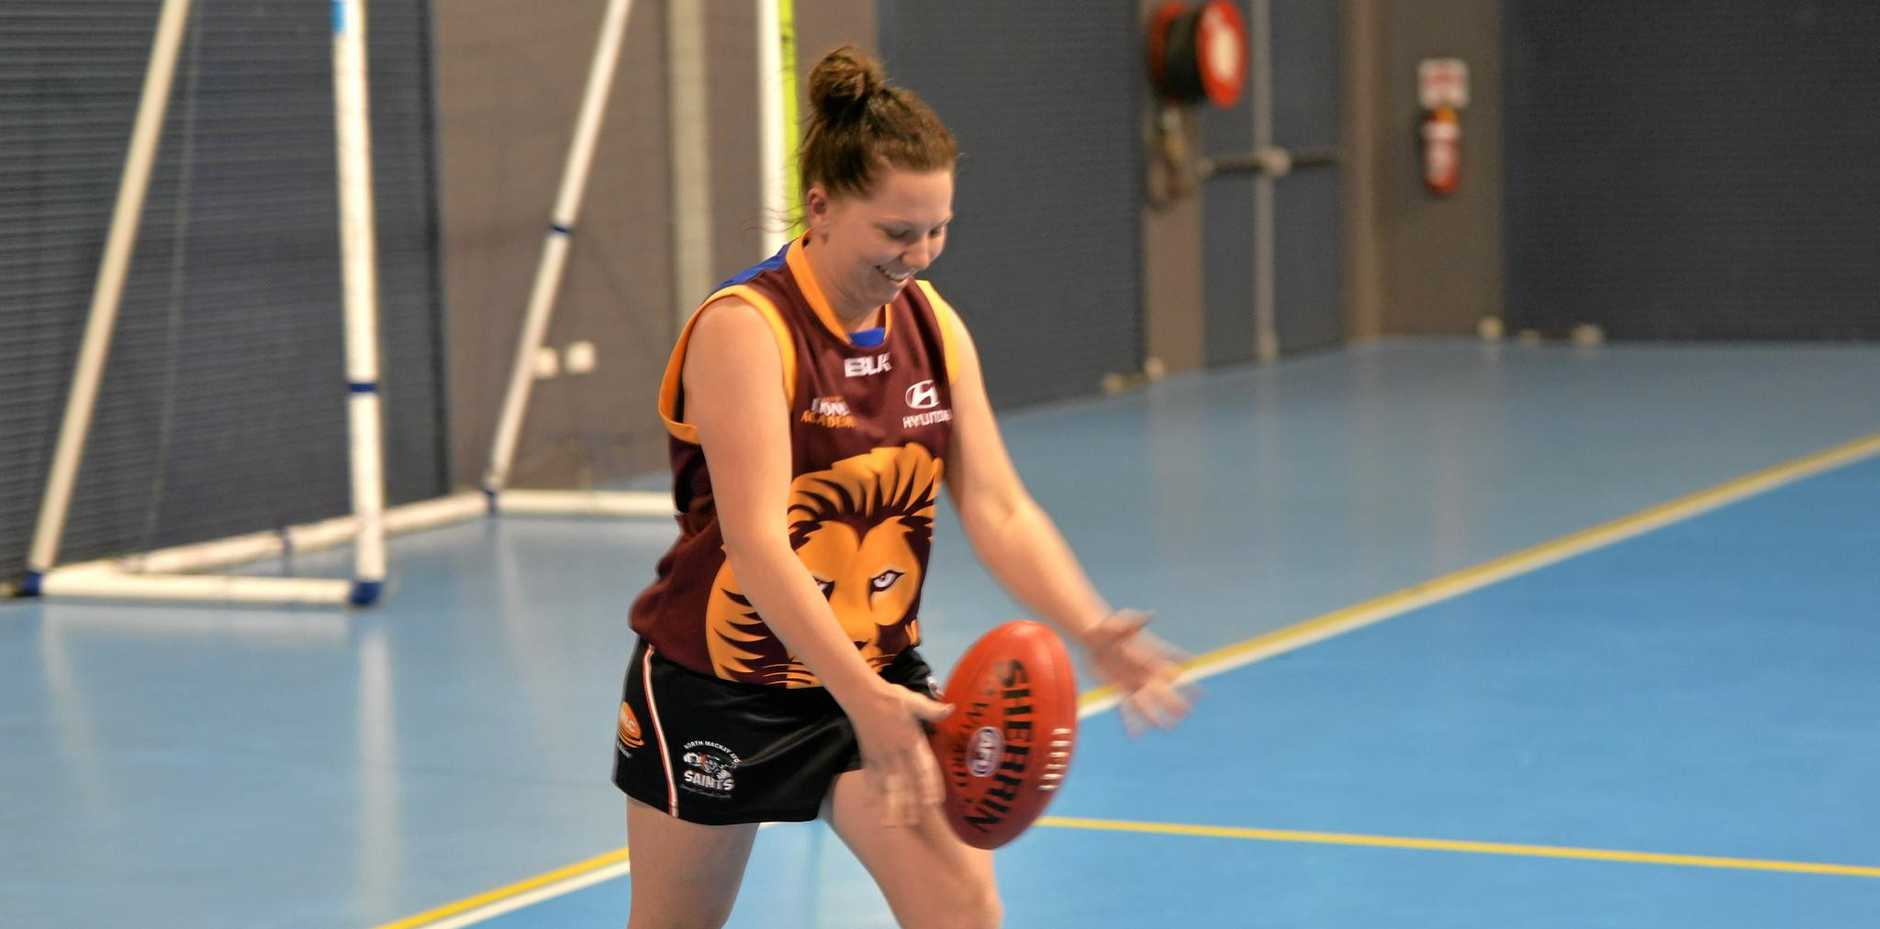 North Mackay Saints midfielder Codie Rasmussen has only been playing for a year and wanted to show what Mackay women's footy had to offer.